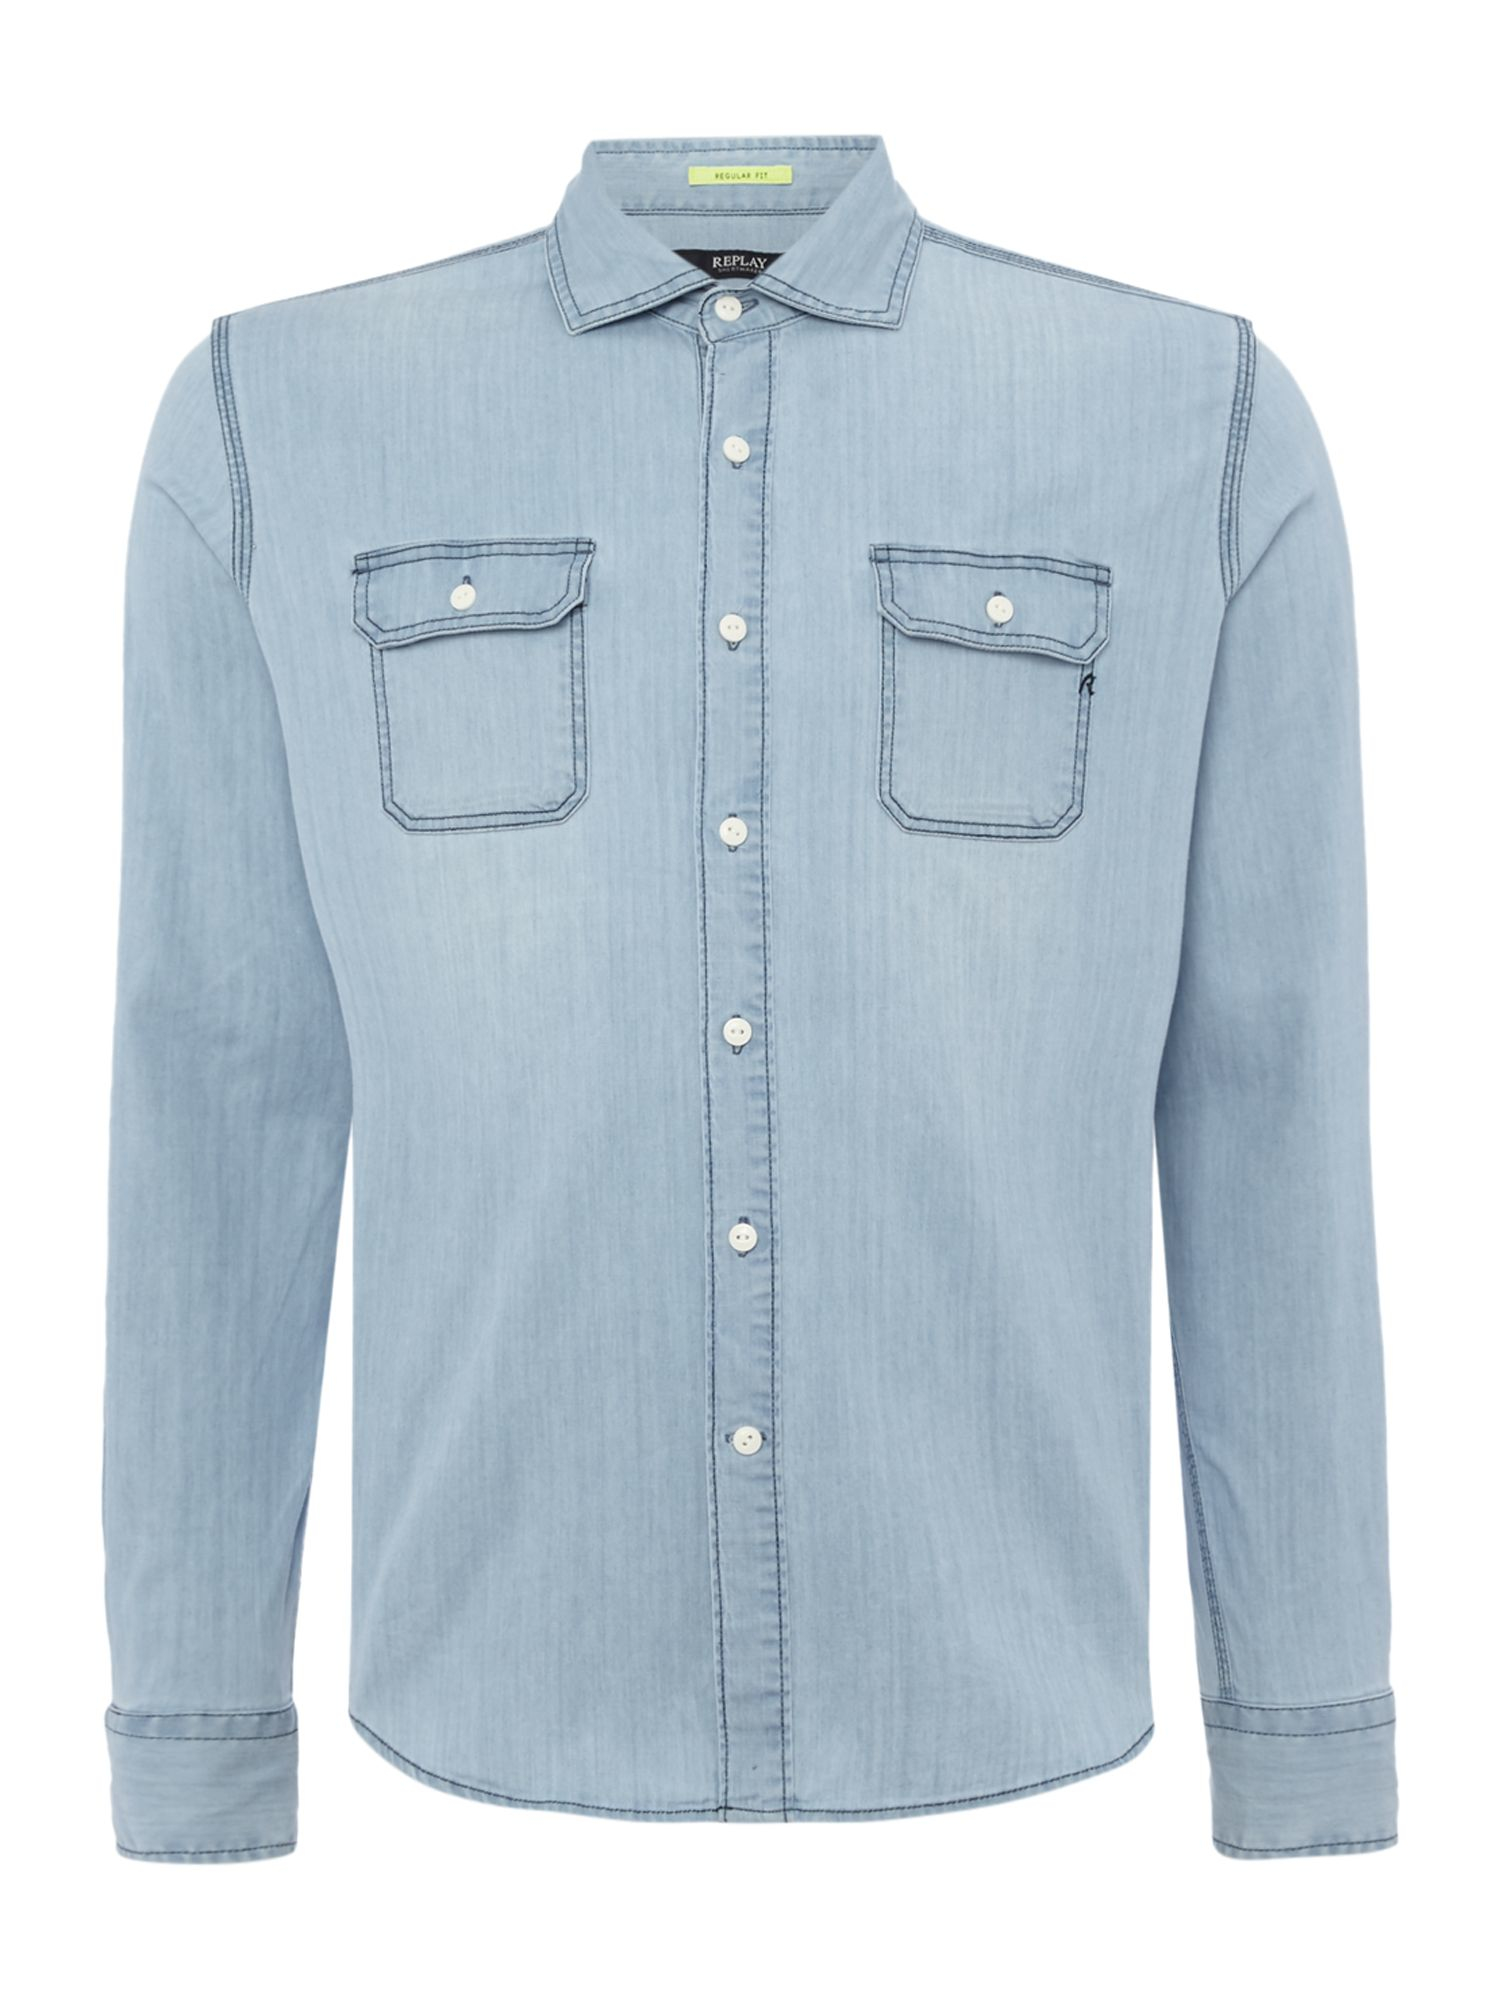 Lyst replay stretch denim shirt in blue for men for Replay blue jeans t shirt